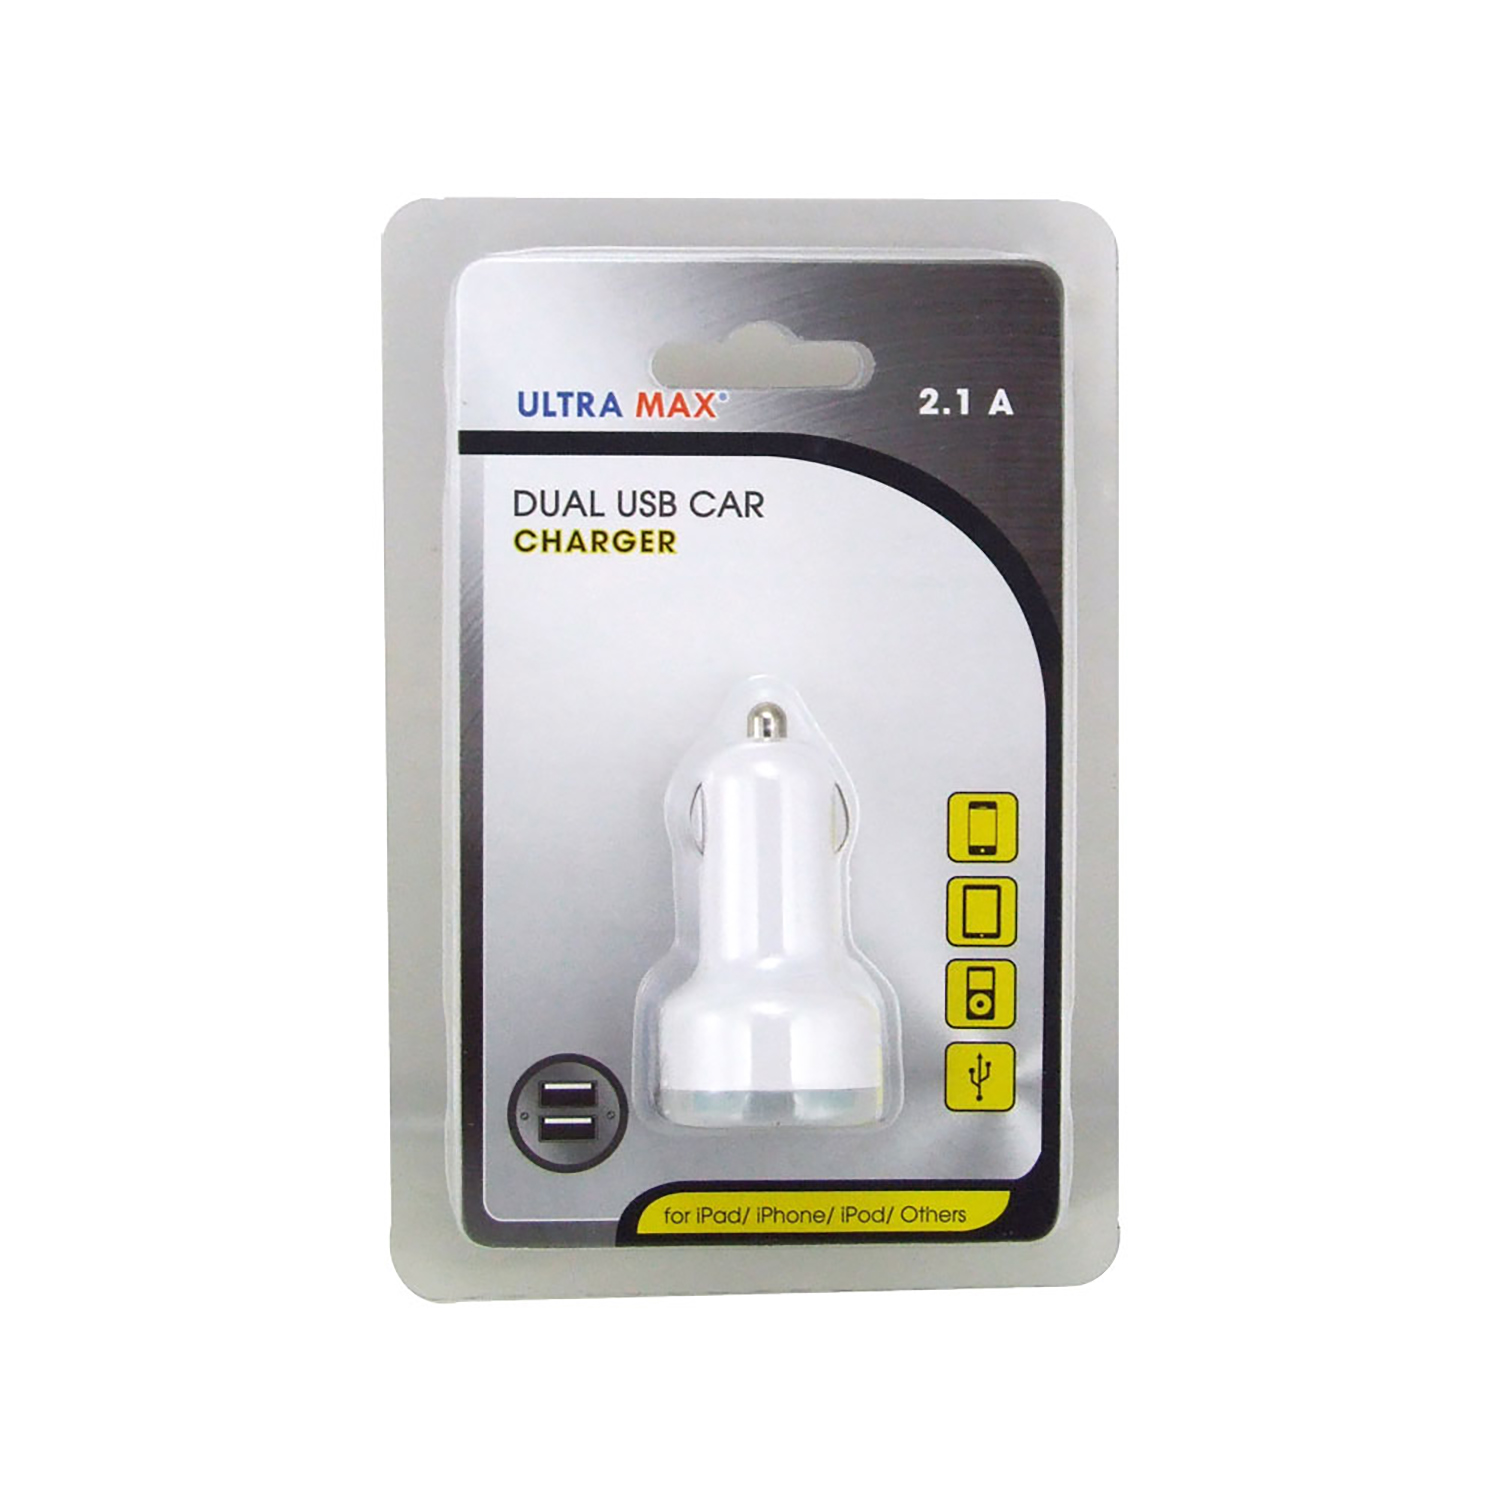 Car Charger 2.1A With Two USB Ports Ref ADPUMXC-2.1A